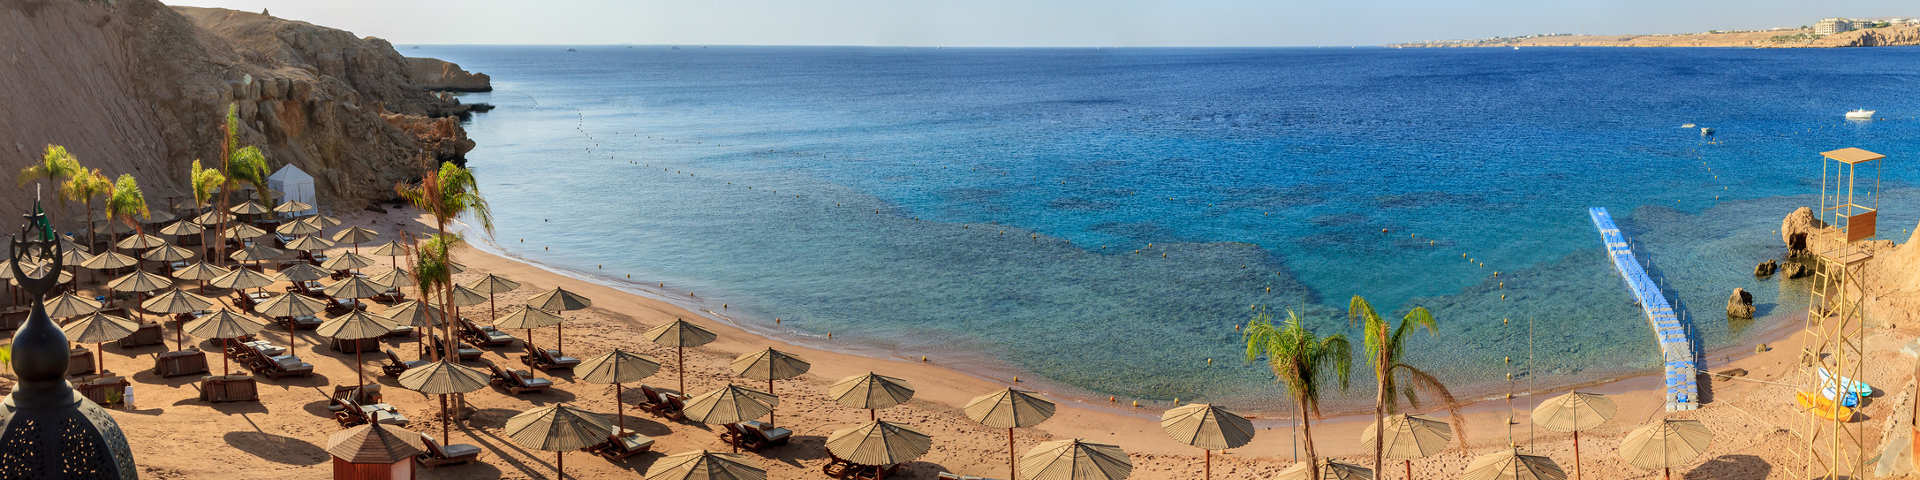 Sharm el sheikh hero1